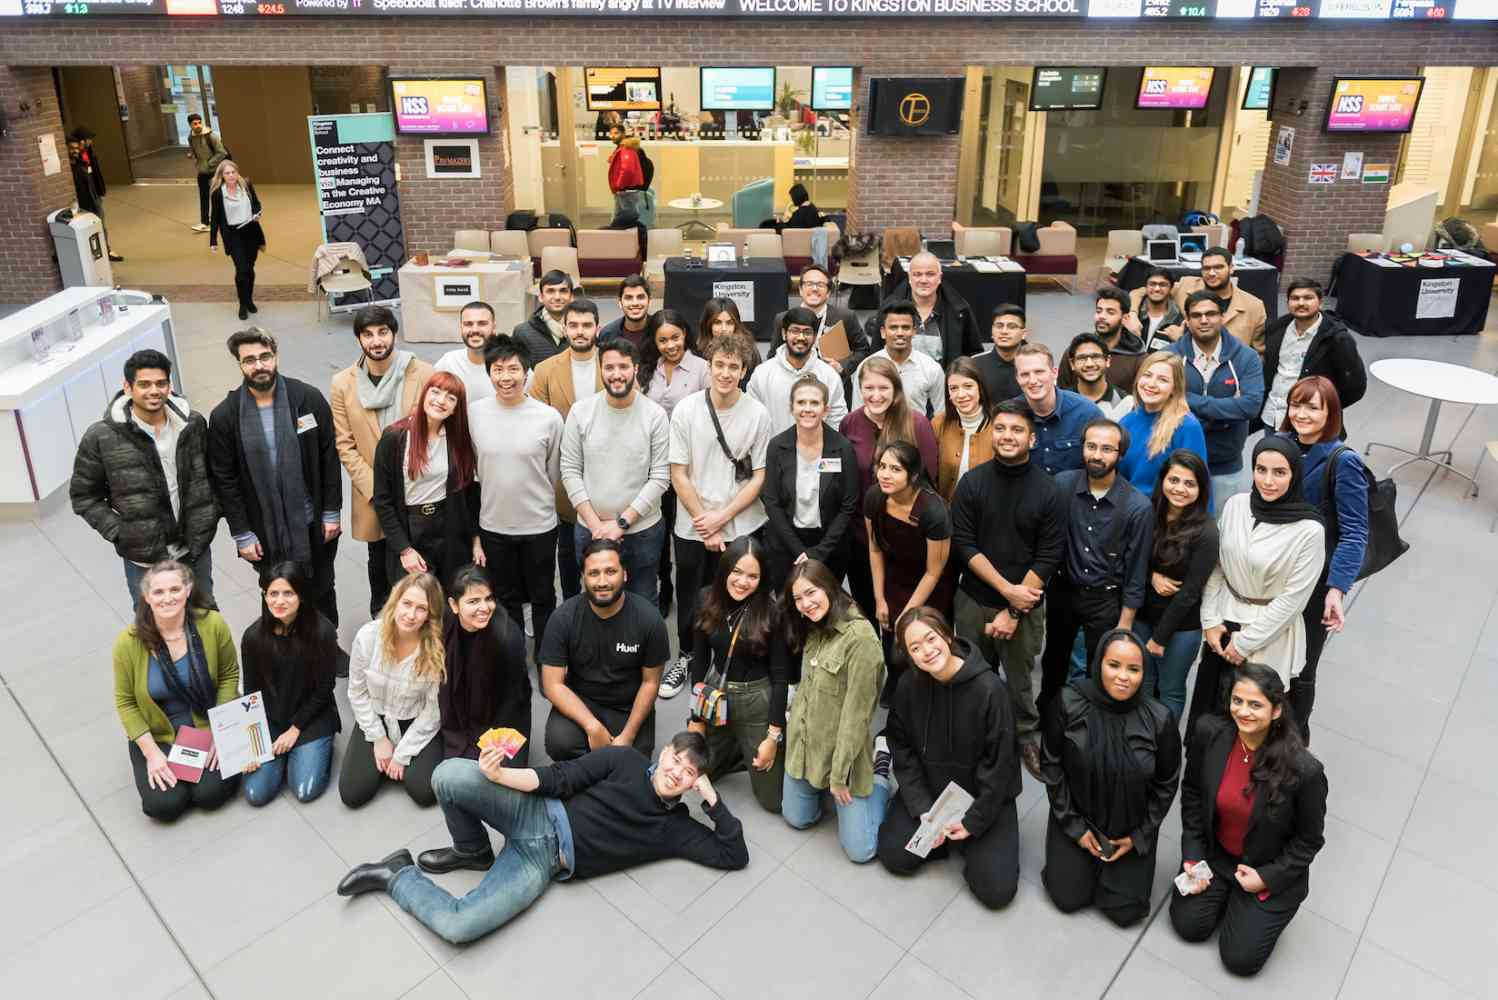 Kingston Business School Start-up Trade Fair, January 2019 - Kingston Business School Start-up Trade Fair, January 2019